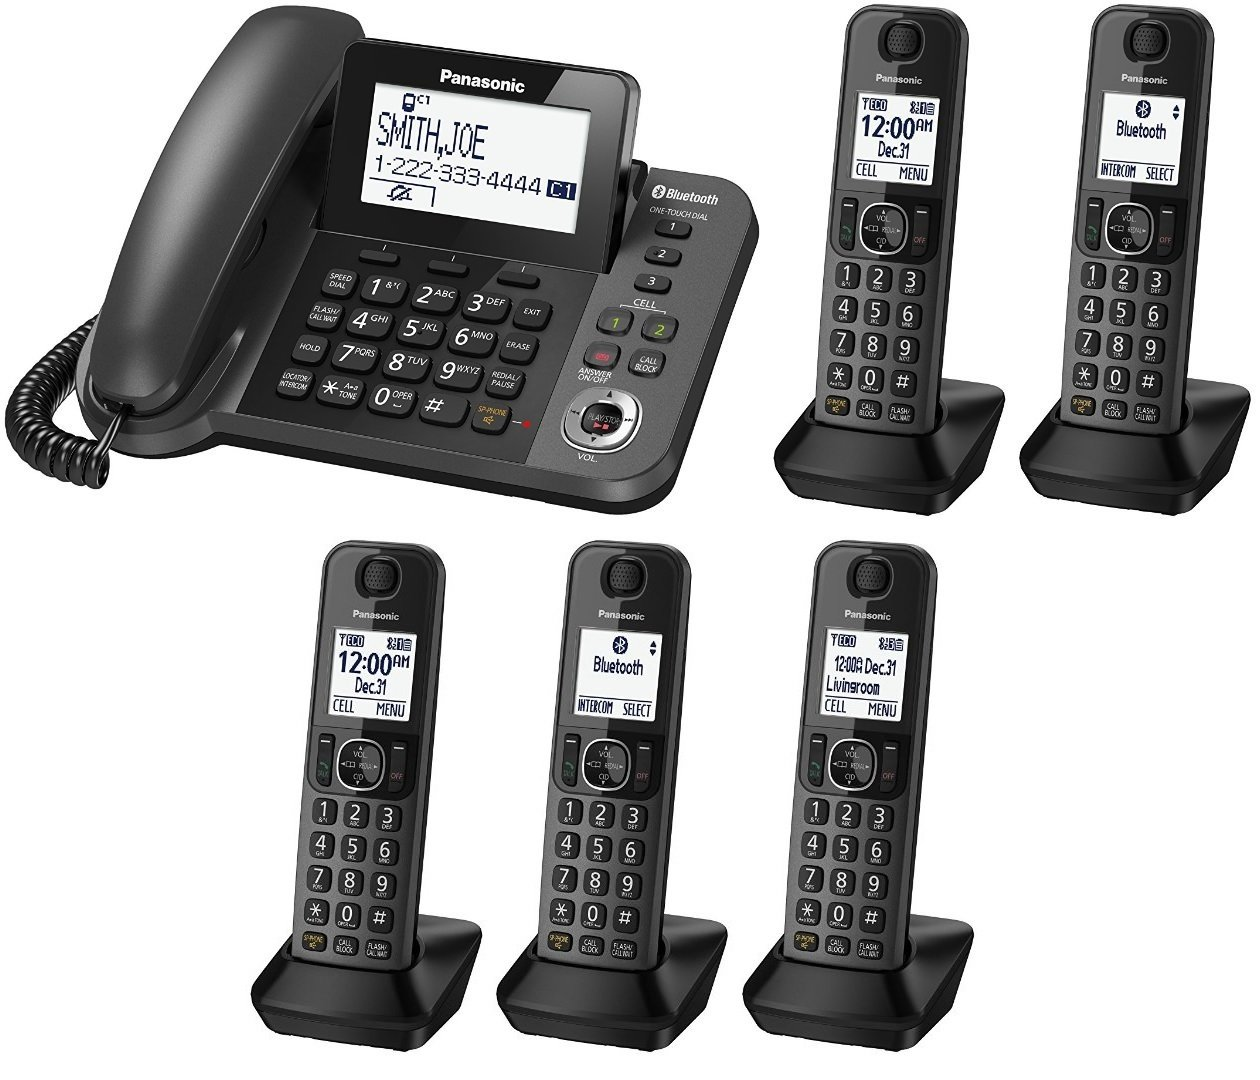 Panasonic KX-TGF383M plus two KX-TGFA30M handsets DECT 6.0 Plus Corded / Cordless 5-Handset Landline Telephone System (KX-TGF383M+2, KX-TGF382M+3, KX-TGF380M+4) (Certified Refurbished) by Panasonic